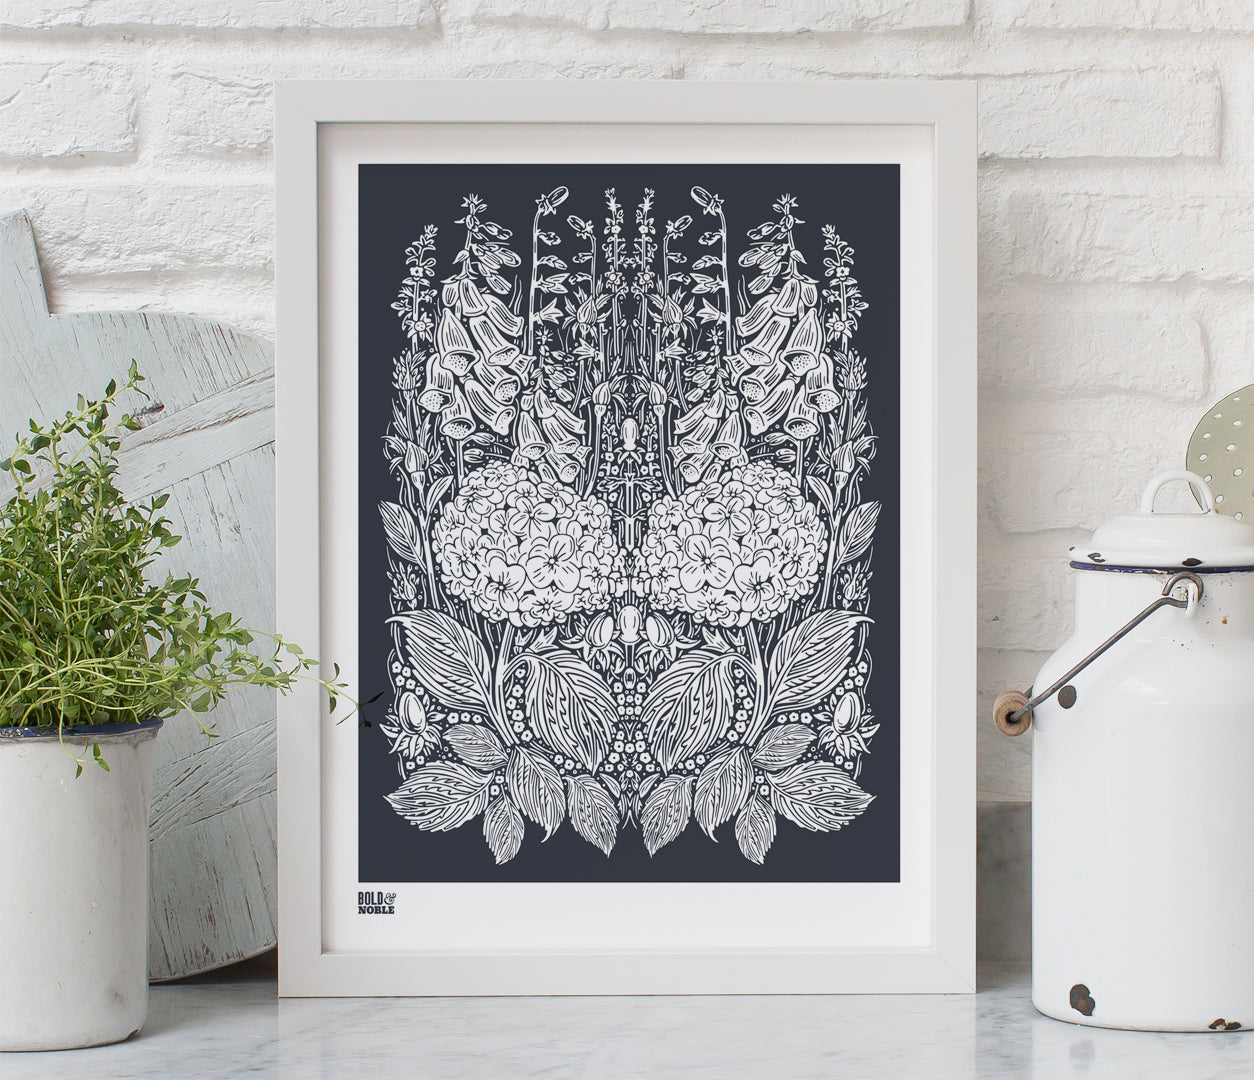 Pictures and Wall Art, Screen Printed Hydrangea Foxglove in Sheer Slate